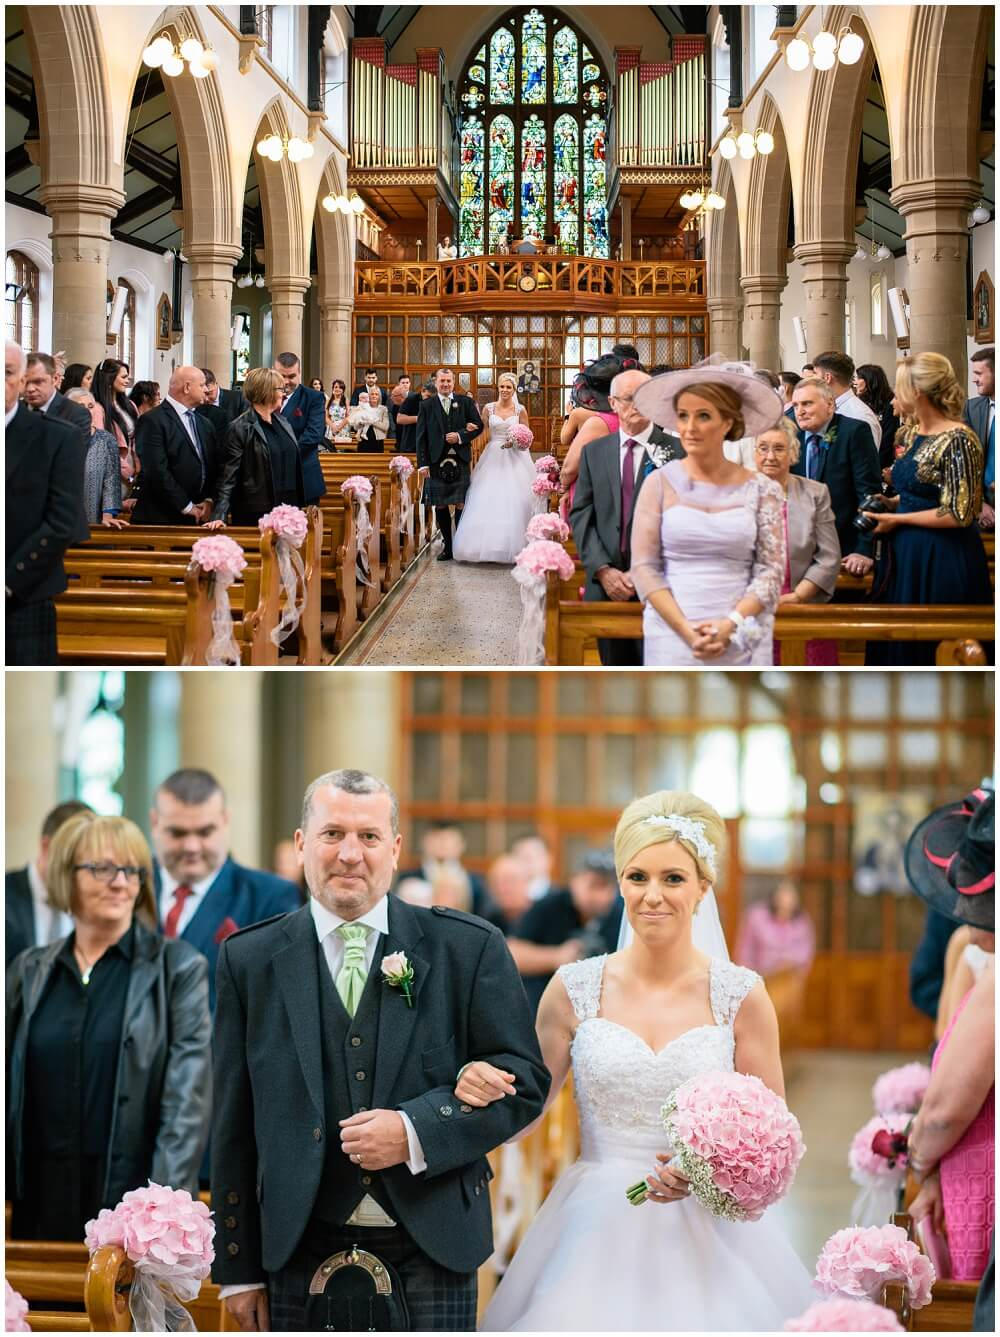 wedding, bride, kilt, storybook, Grand Central hotel, glasgow, motherwell cathedral, photography, photographer, mark mccue